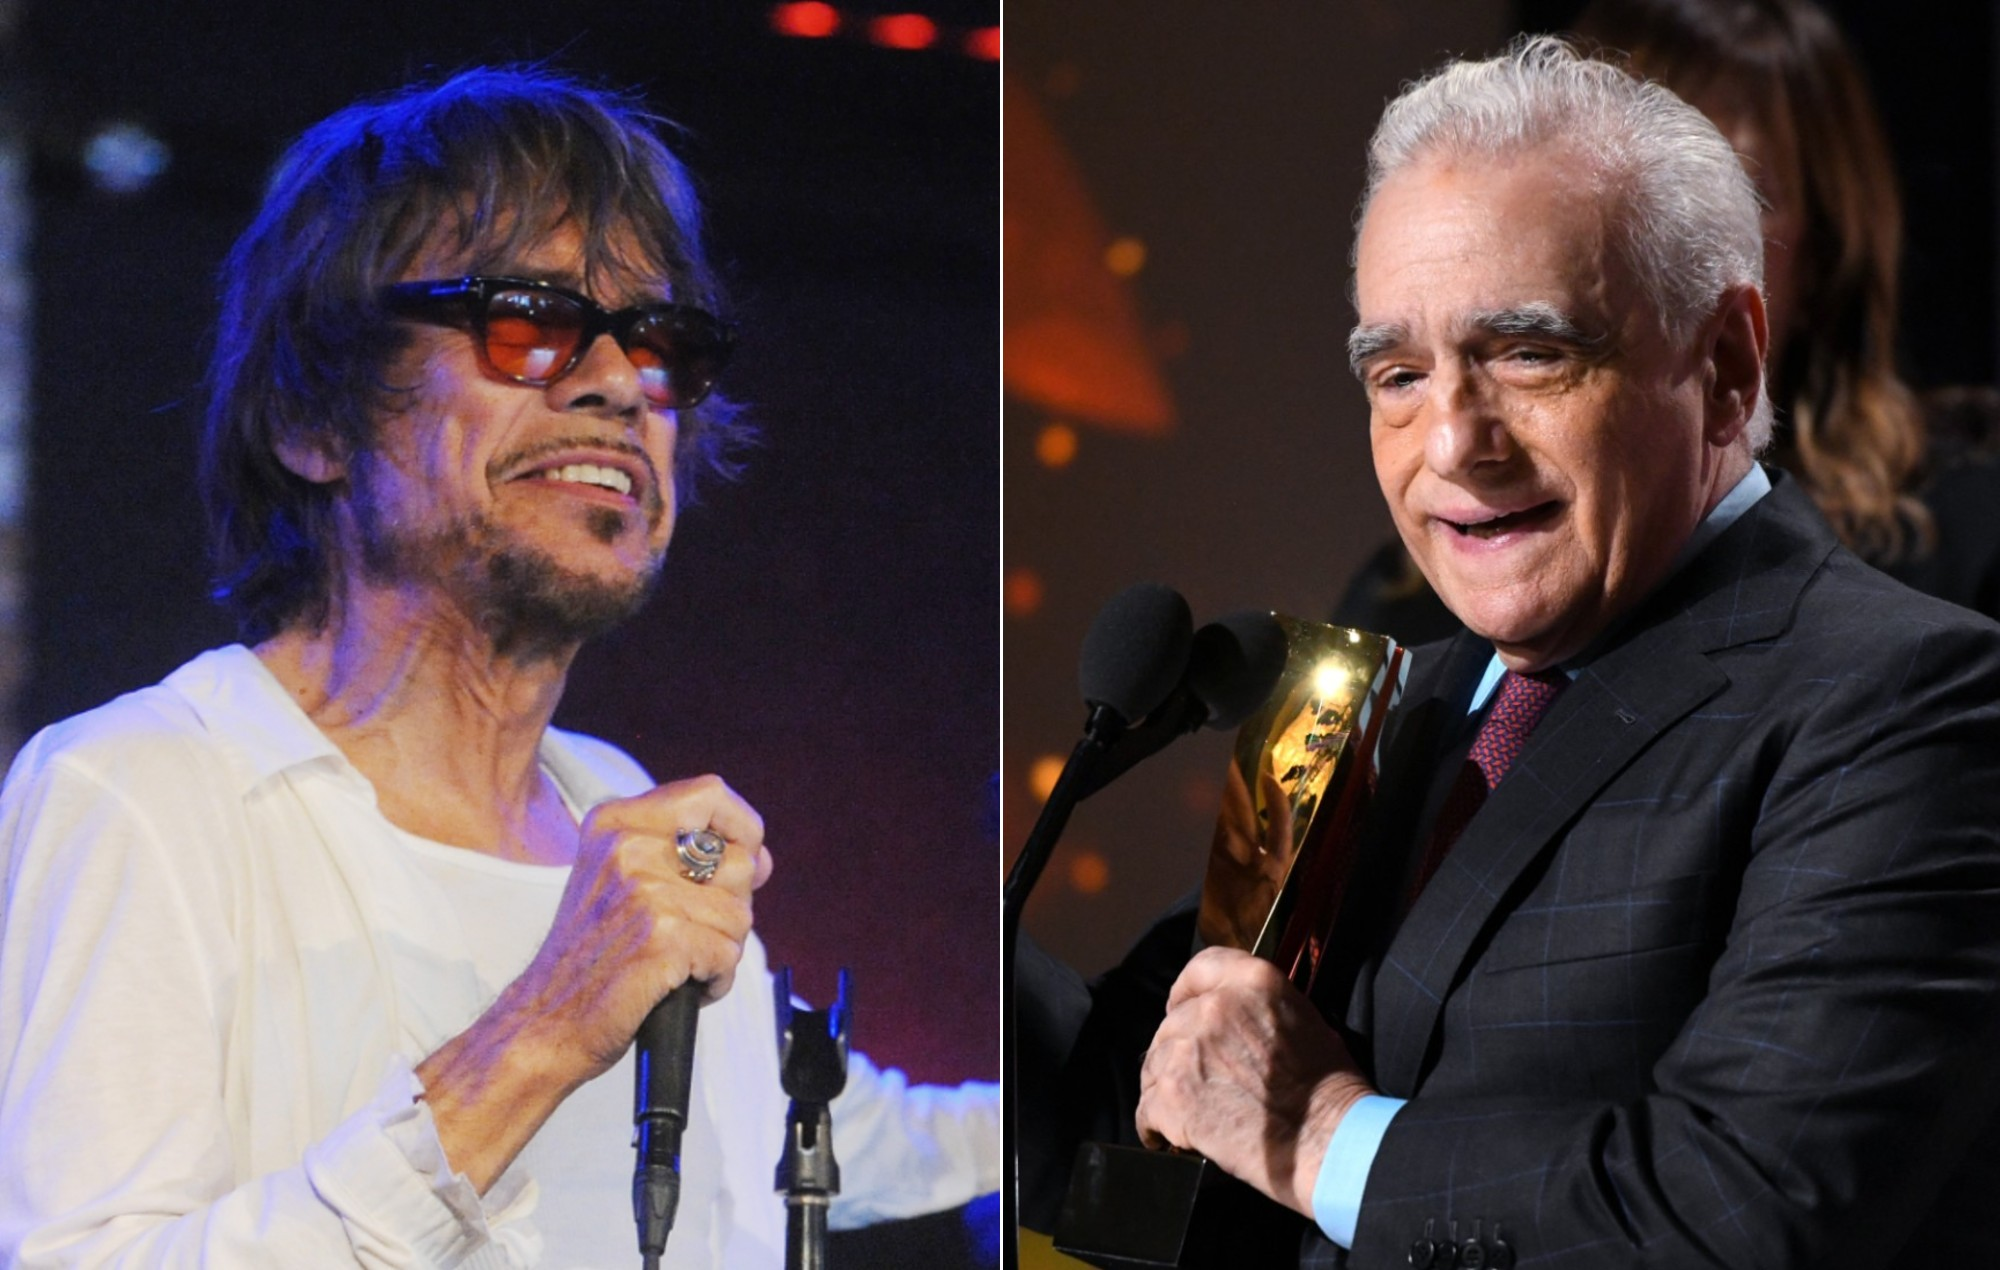 Martin Scorsese To Direct New Documentary About New York Dolls David Johansen